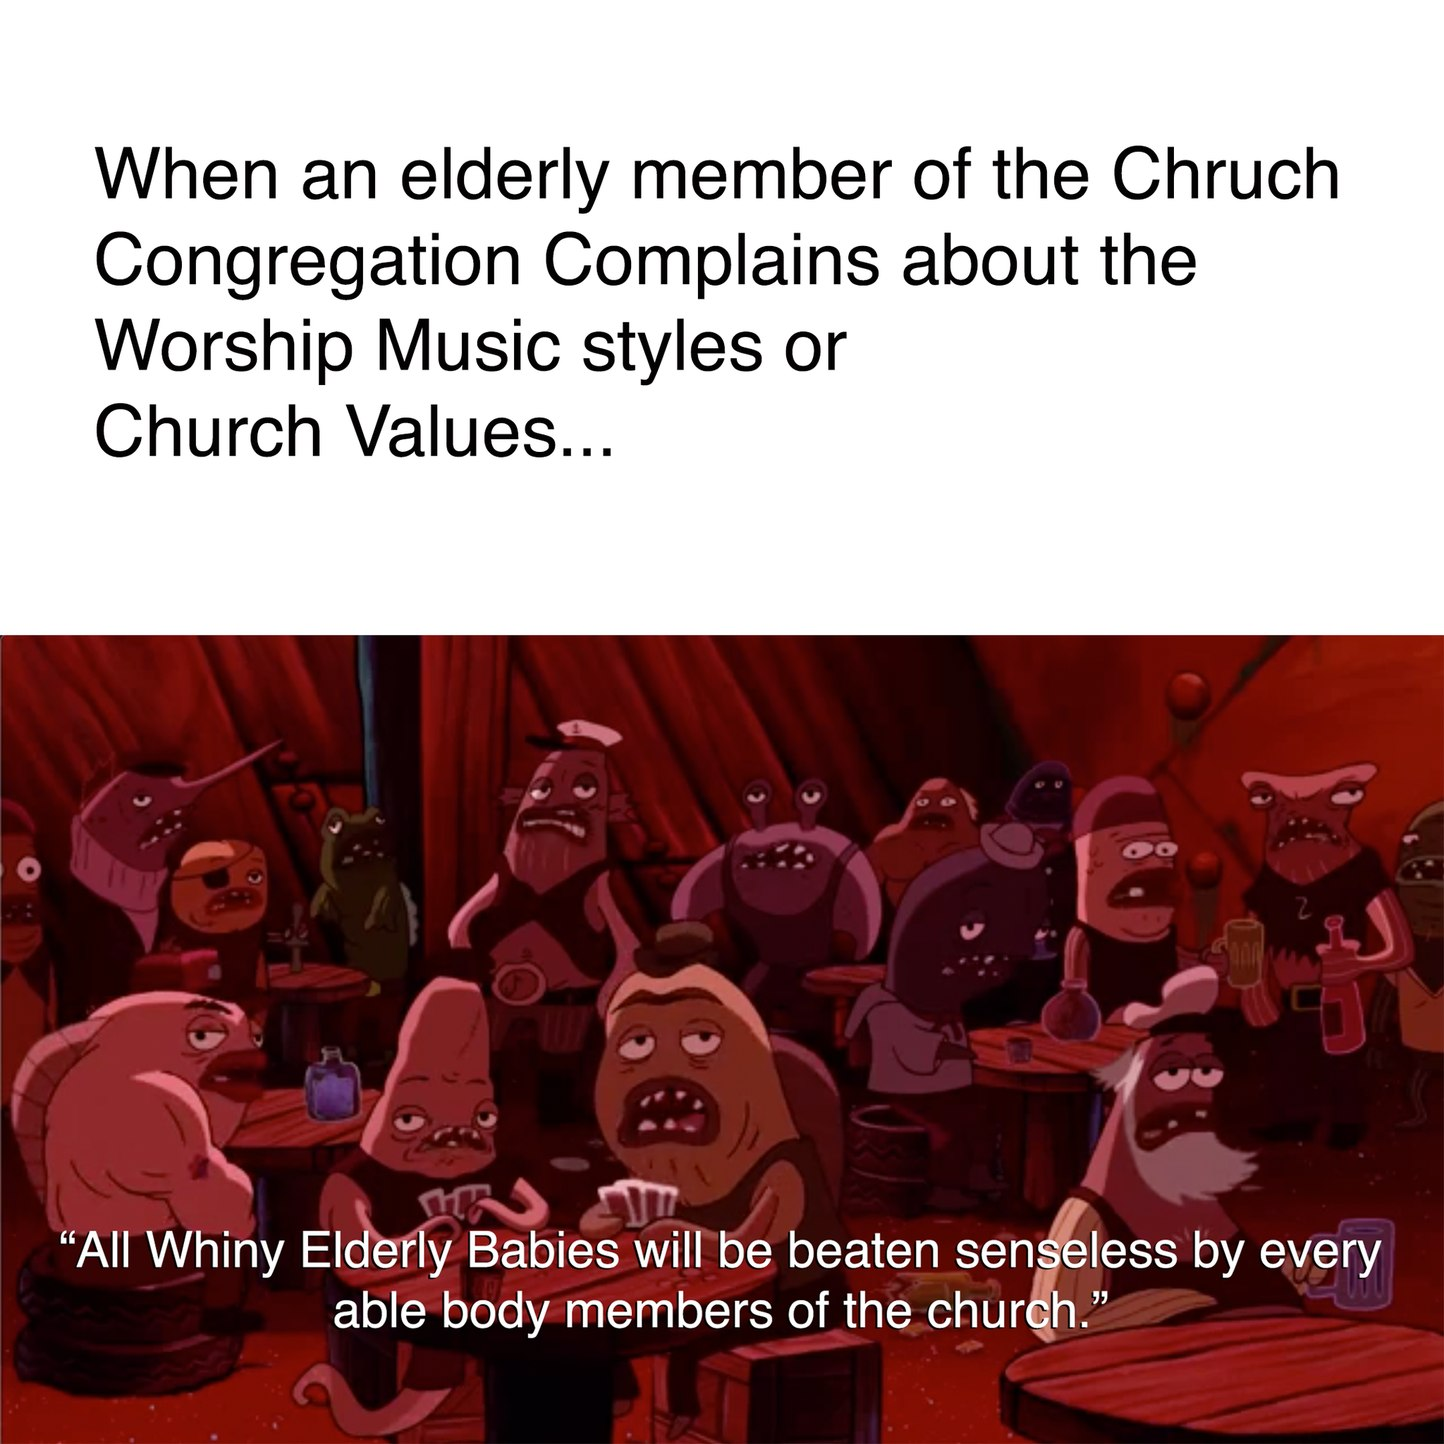 Worship music styles and church values elderly complaints - meme